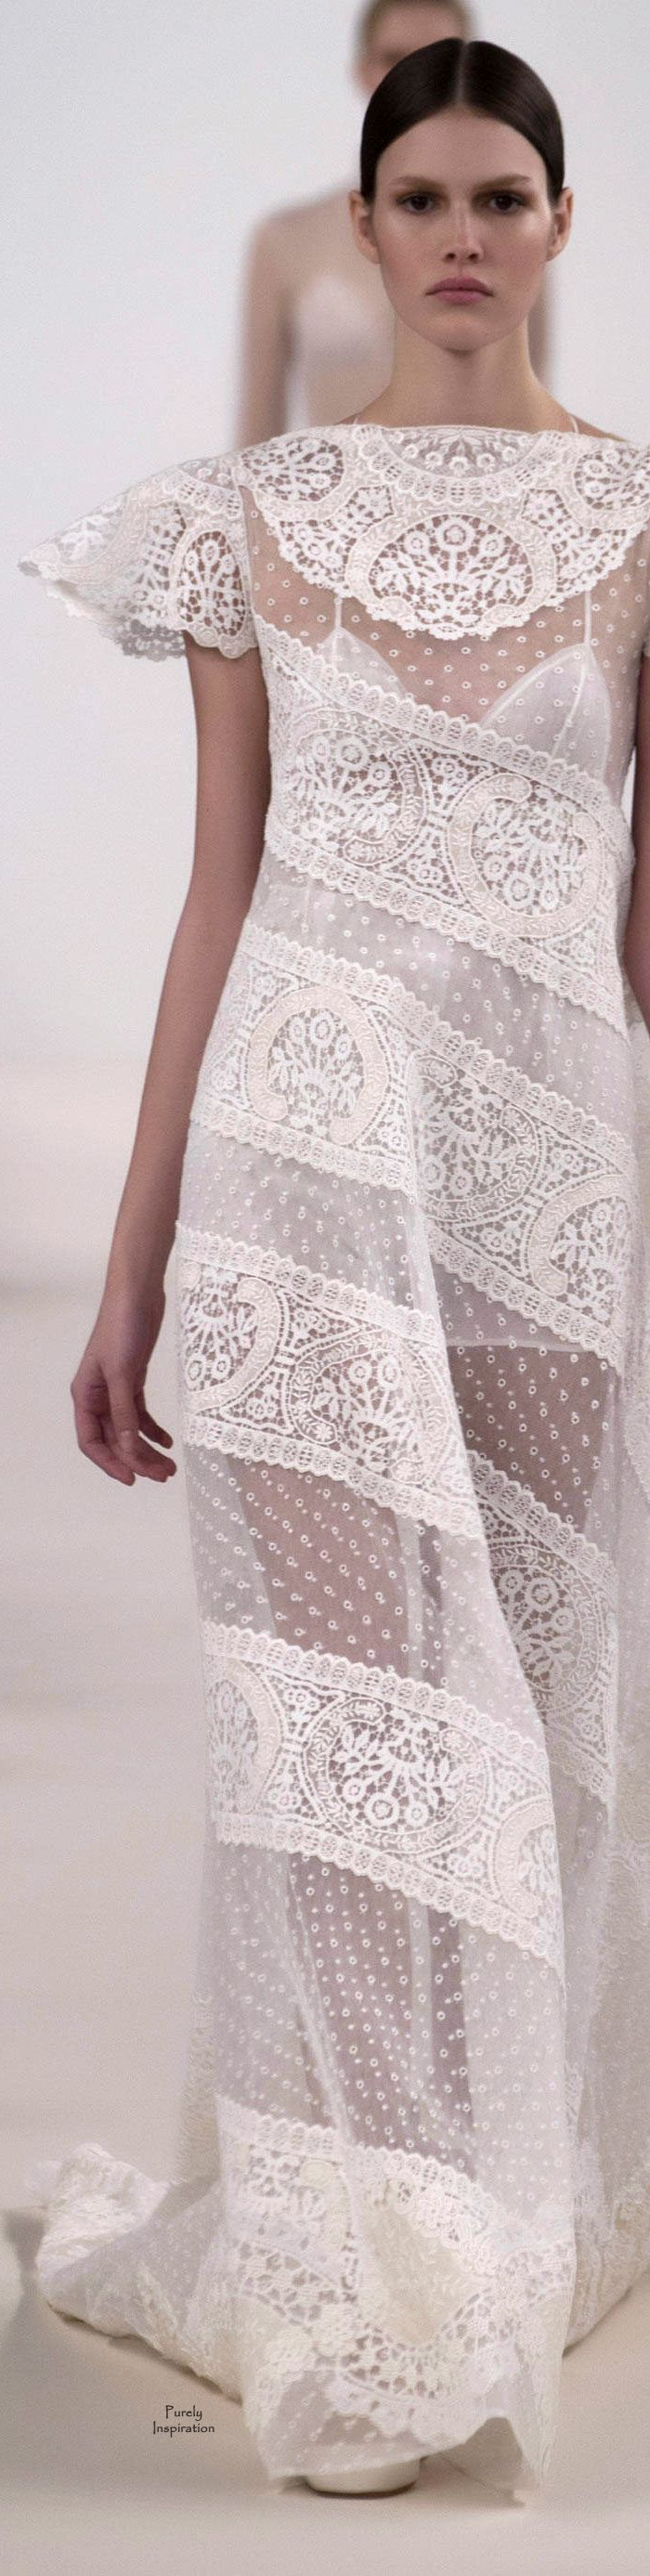 Valentino New York Haute Couture Fashion Show 2014 | Purely Inspiration